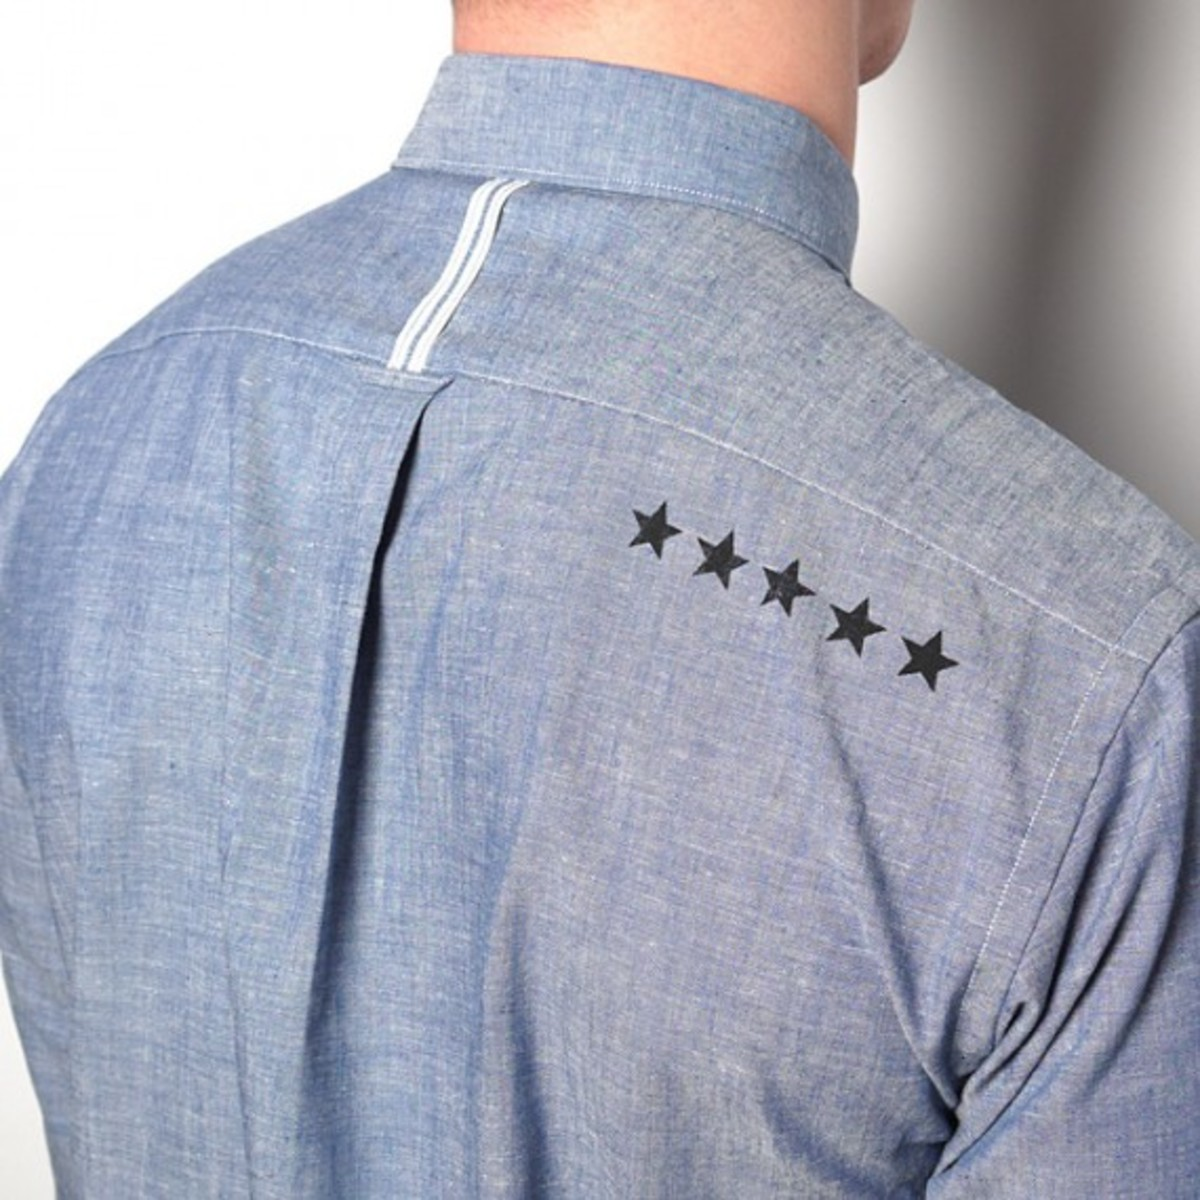 haven-deluxe-hamilton-chambray-shirt-08